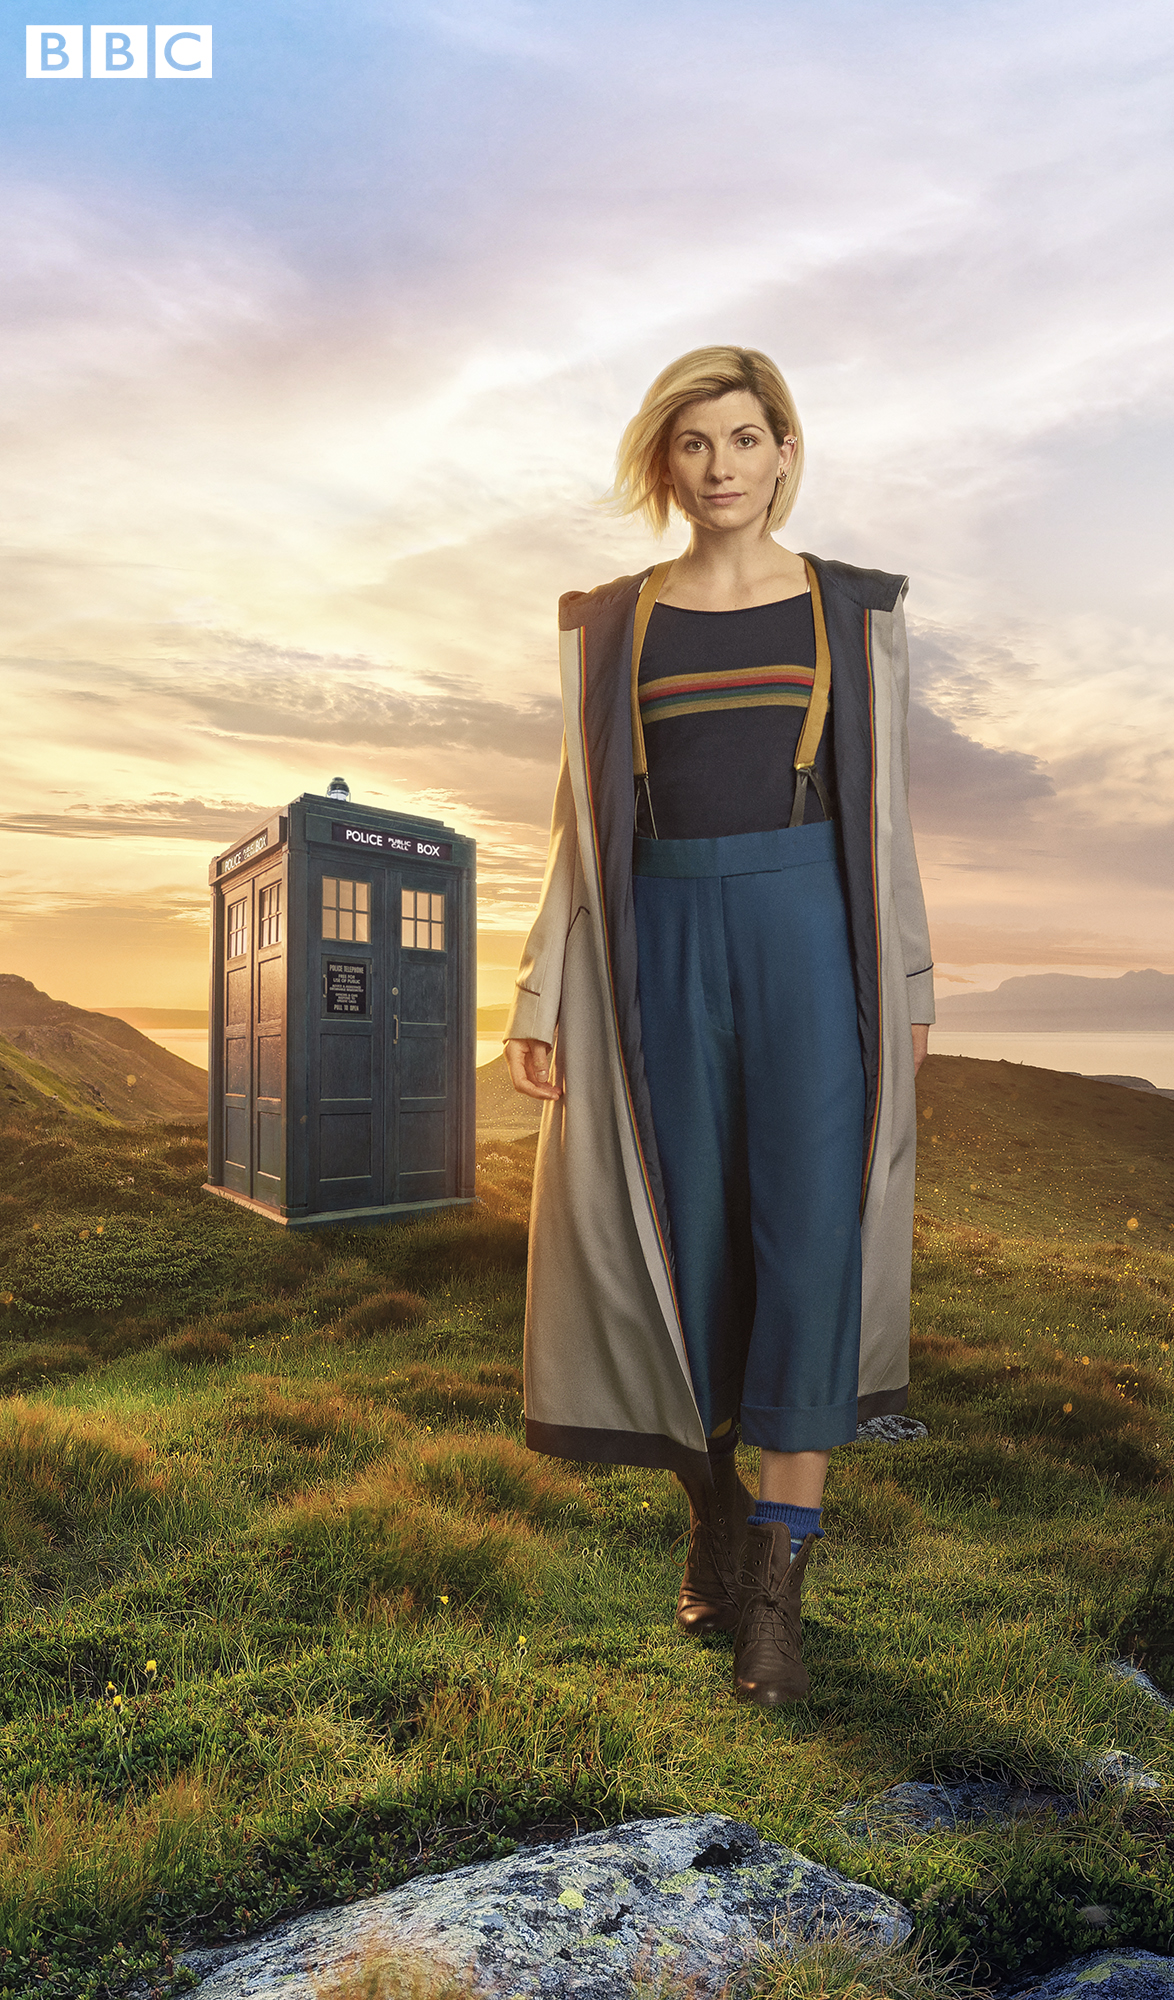 Jodie Whitaker will be the thirteenth Doctor Who when she takes over from Peter Capaldi on Christmtas Day